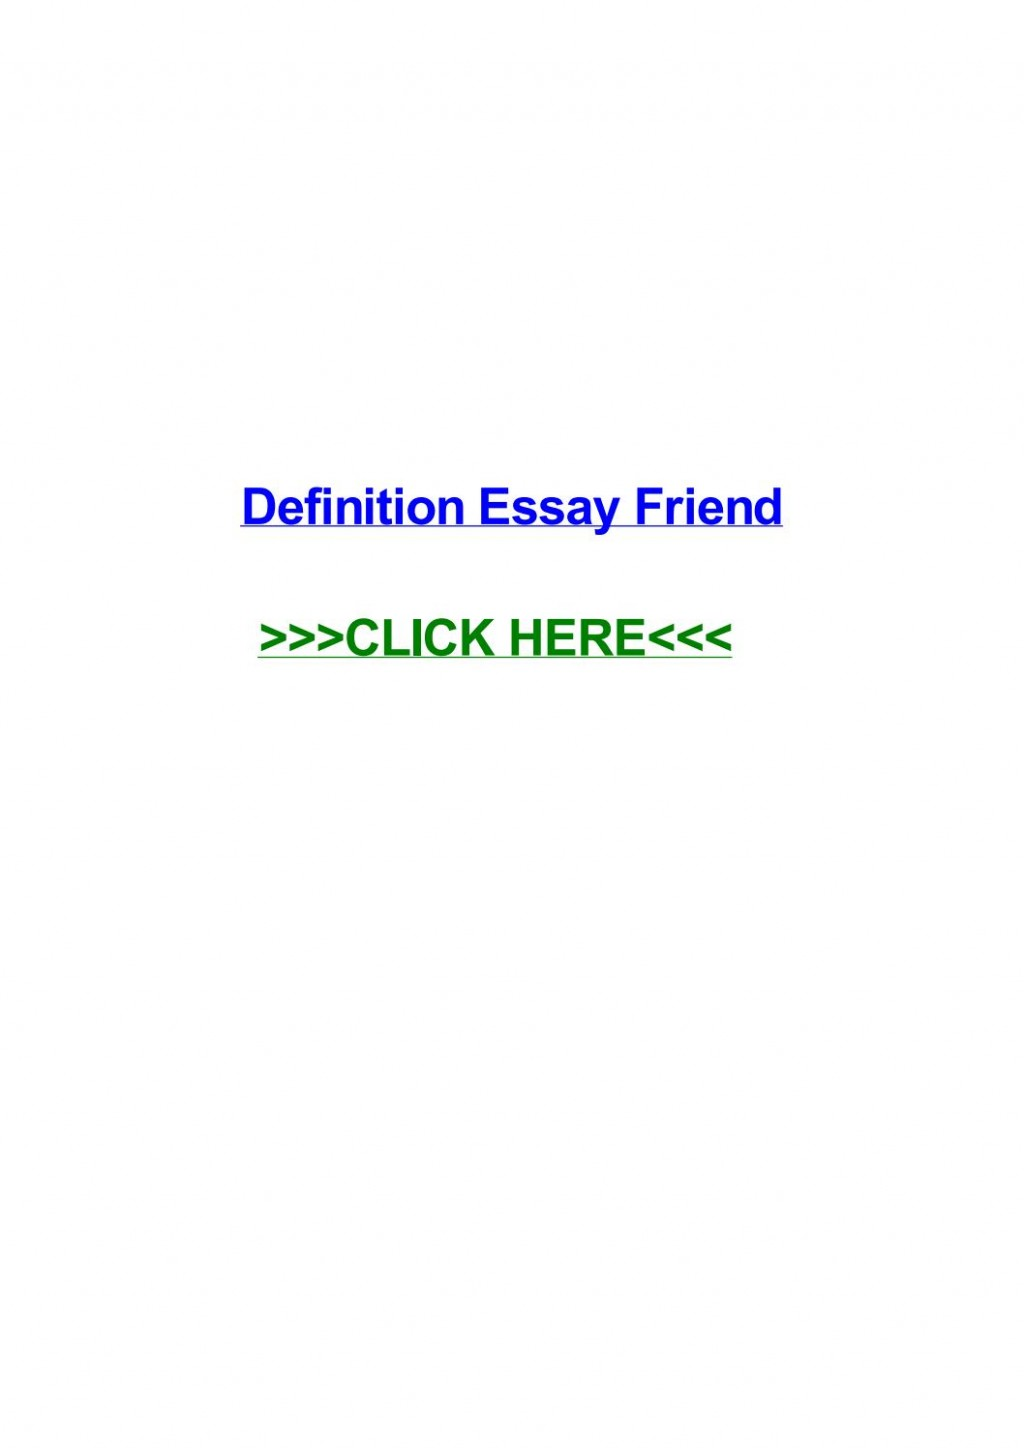 023 Friendship Definition Essay Example Page 1 Formidable Extended True Large